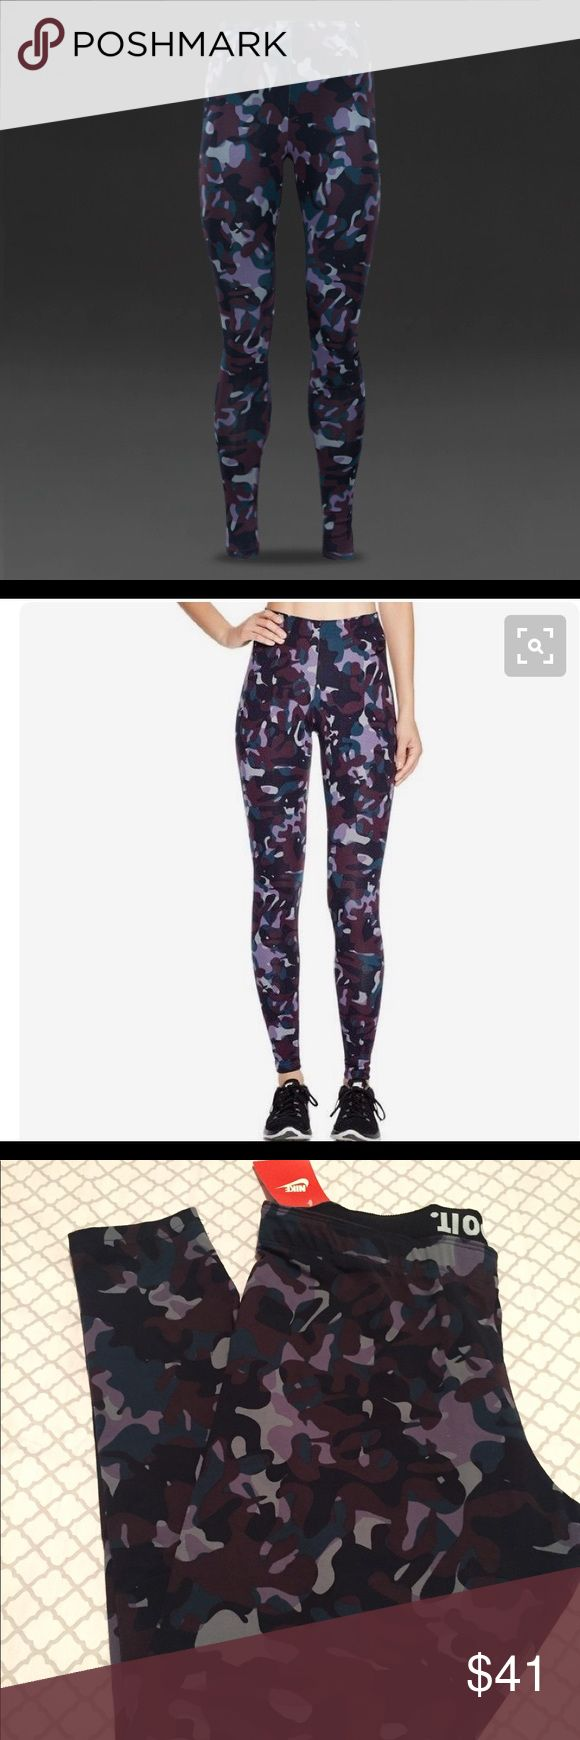 NET NIKE CAMO LEGGINGS New with tags NIKE CAMO LEGGINGS. All my items come from a pet/smoke free home. No trades or holds. Nike Pants Leggings